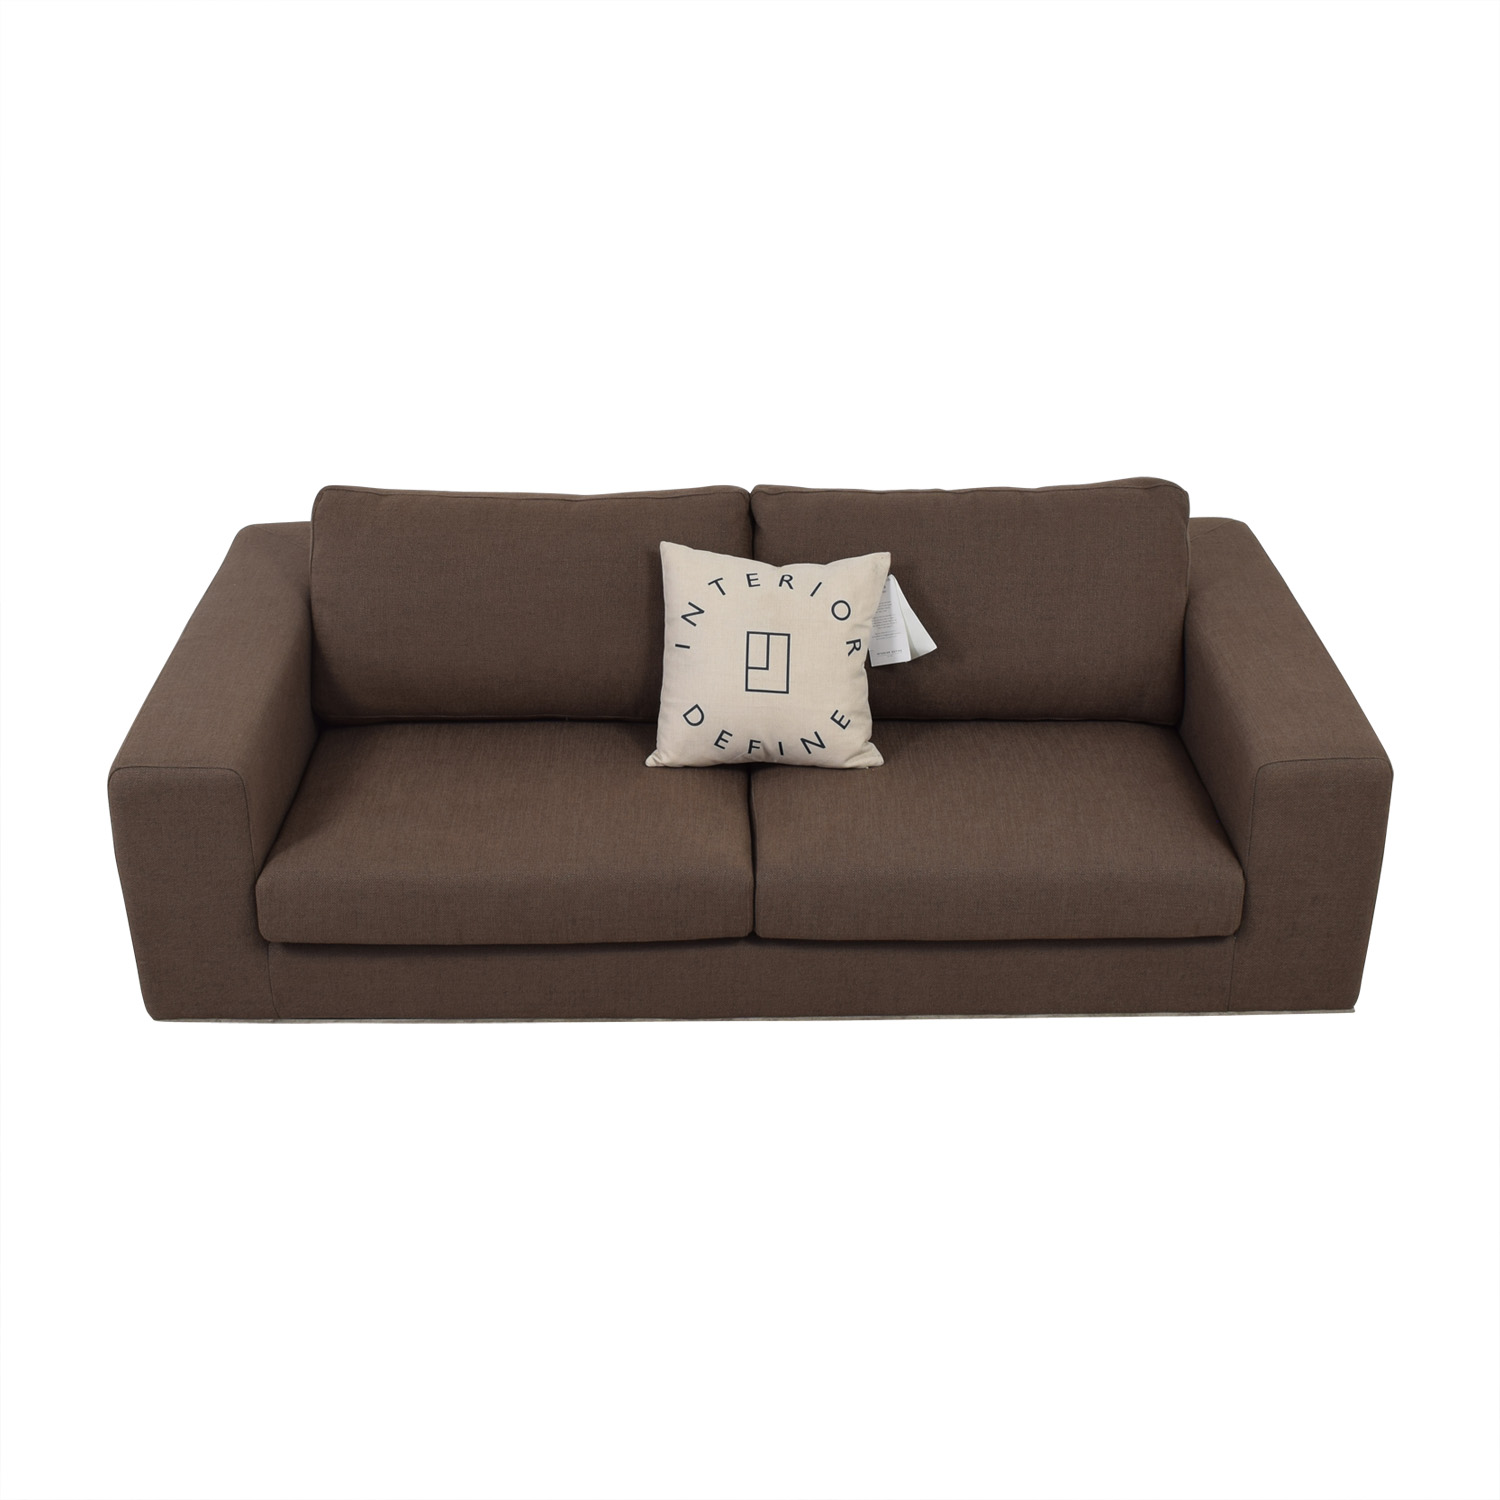 Walters Brown Two-Cushion Sofa used